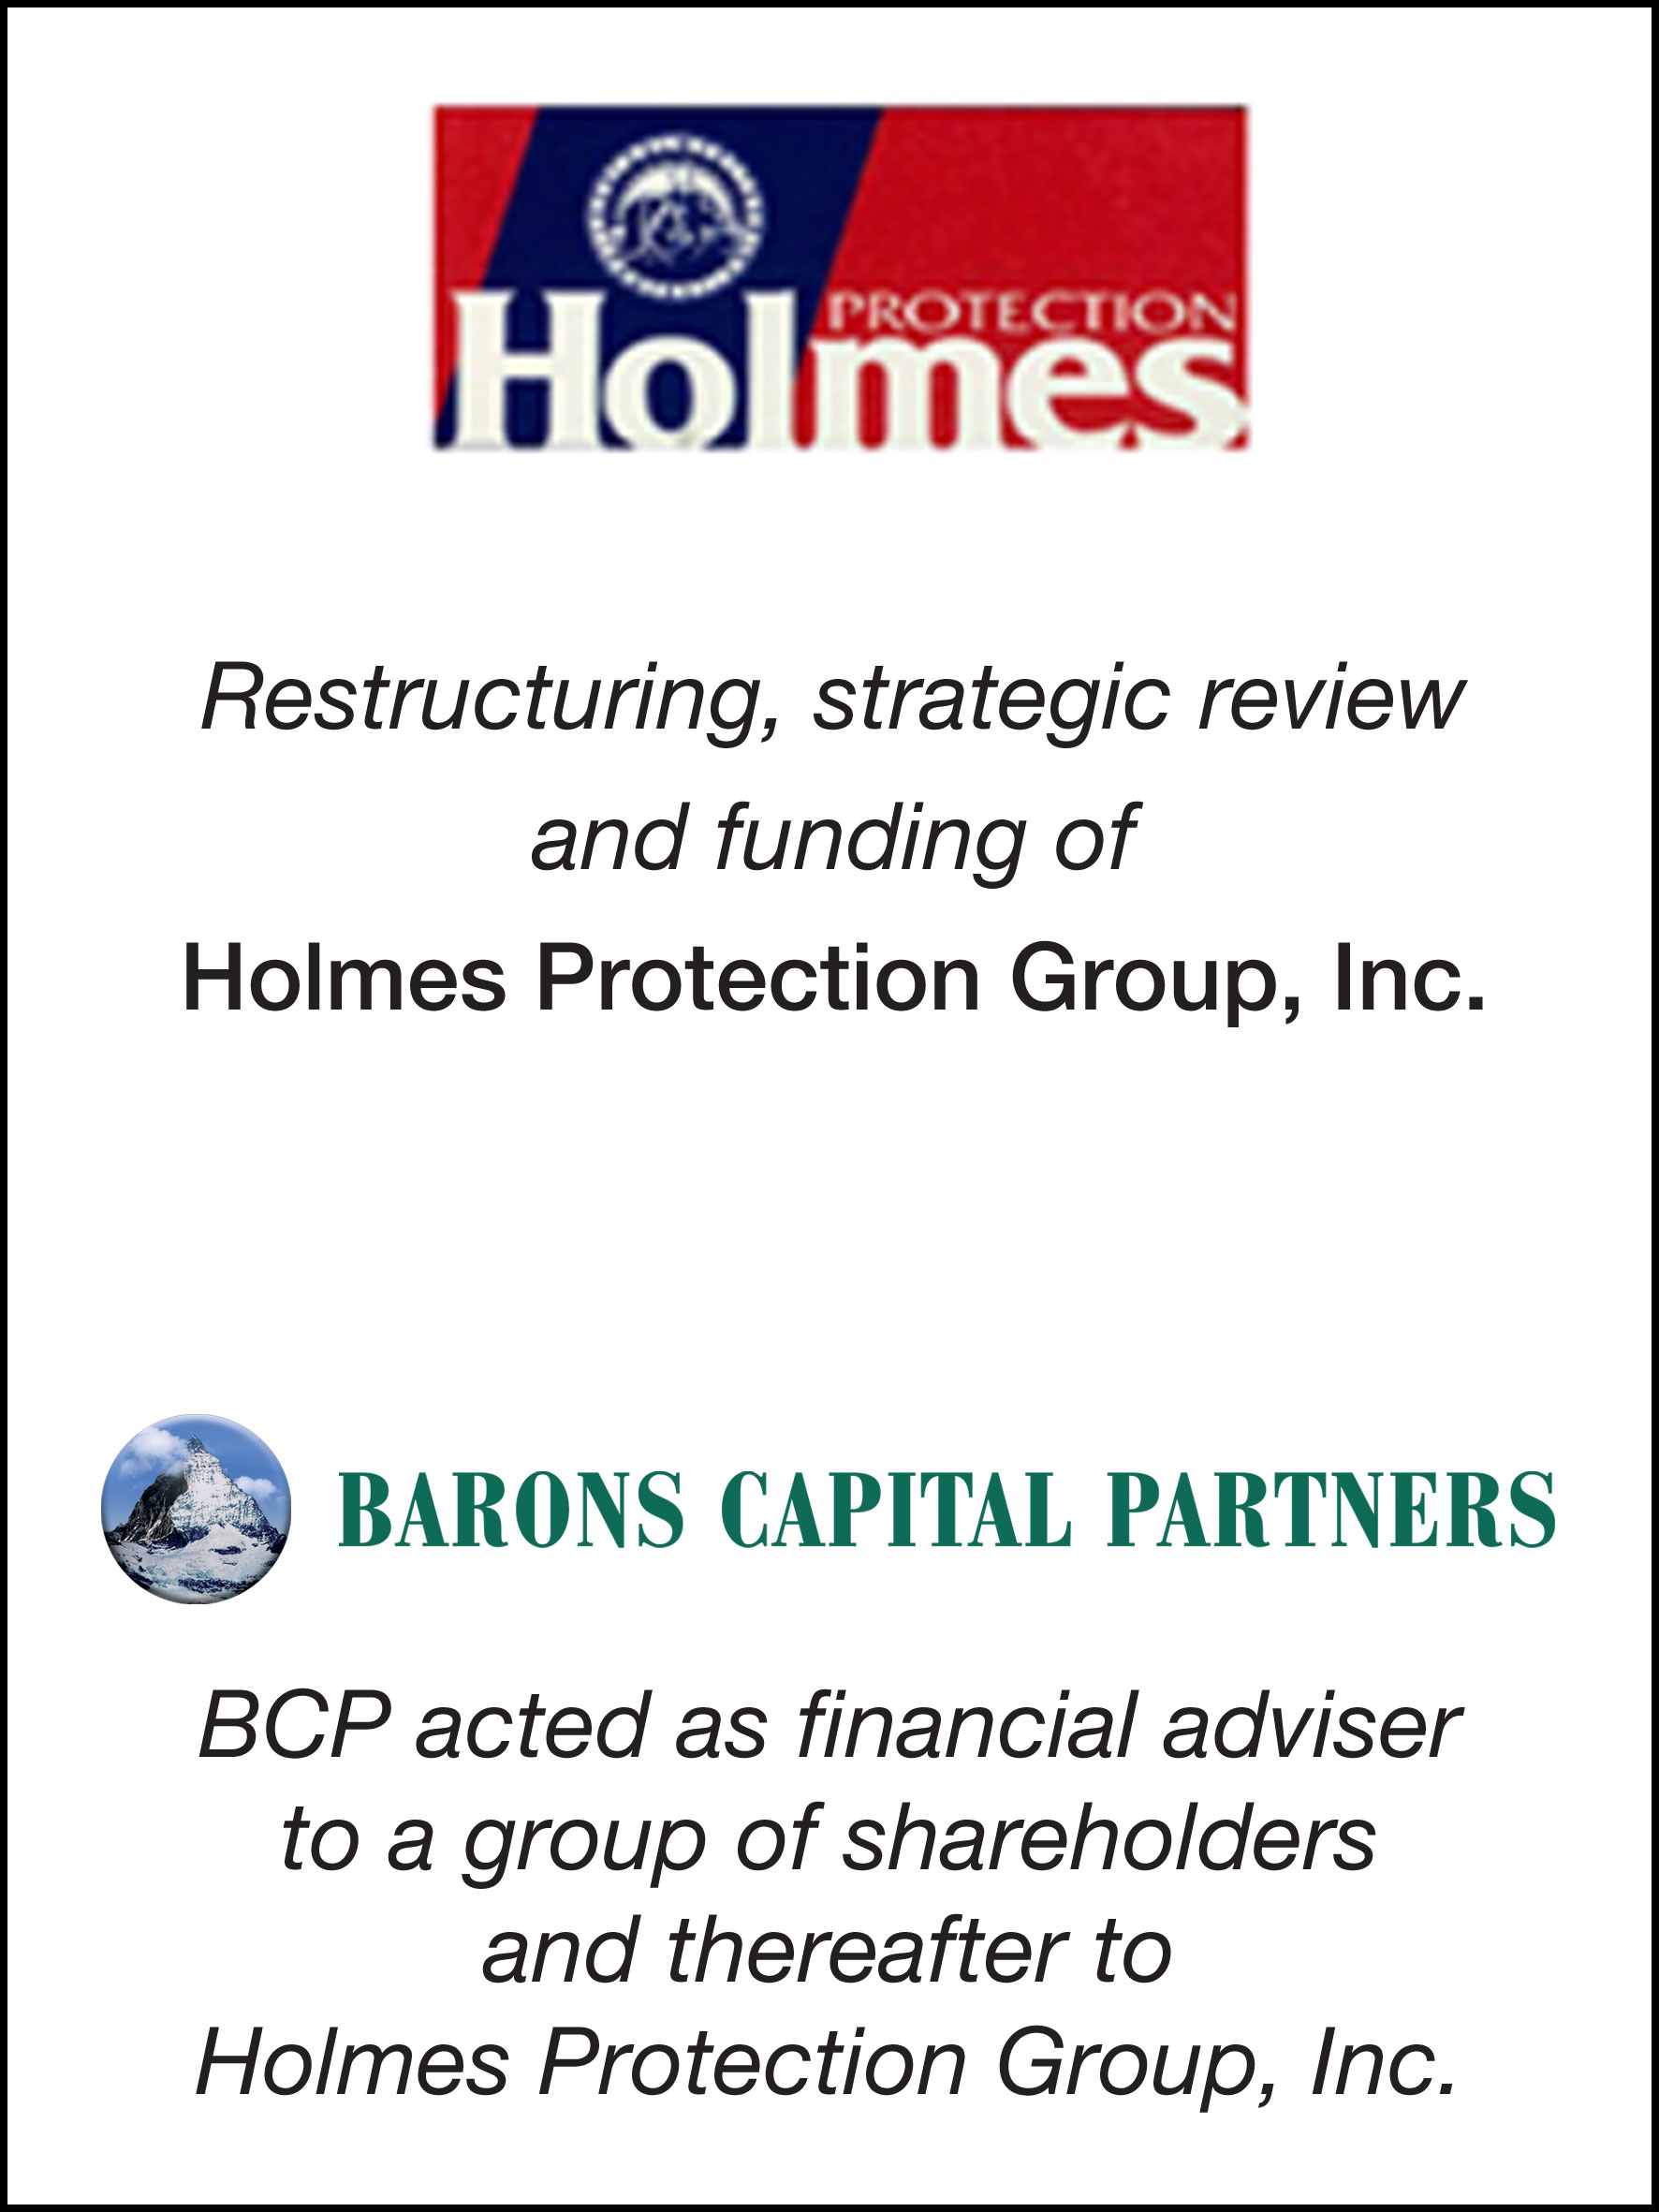 27_Holmes Protection Group Inc